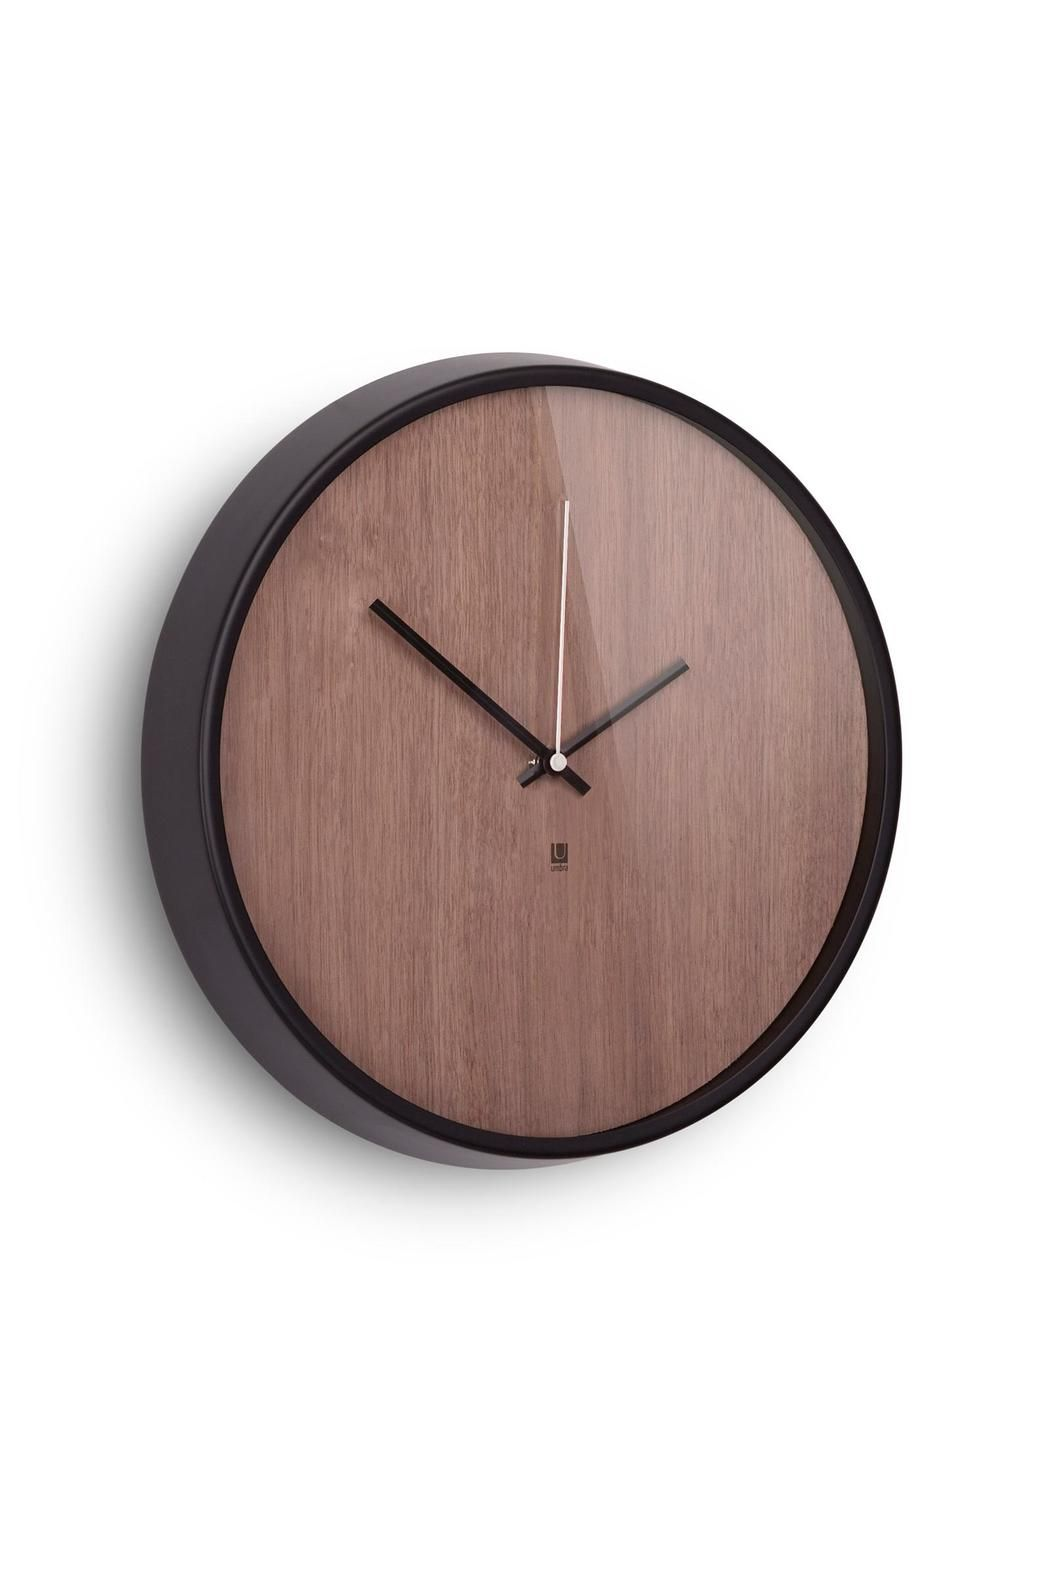 """This tasteful timepiece has the style of a classic, numberless analog wristwatch, with a modern touch: an Ashwood veneer face with a walnut stain and an aluminum rim. Measures 12.75"""". x 1.5"""".   Madera Wall Clock by Umbra. Home & Gifts - Home Decor - Wall Art Washington"""